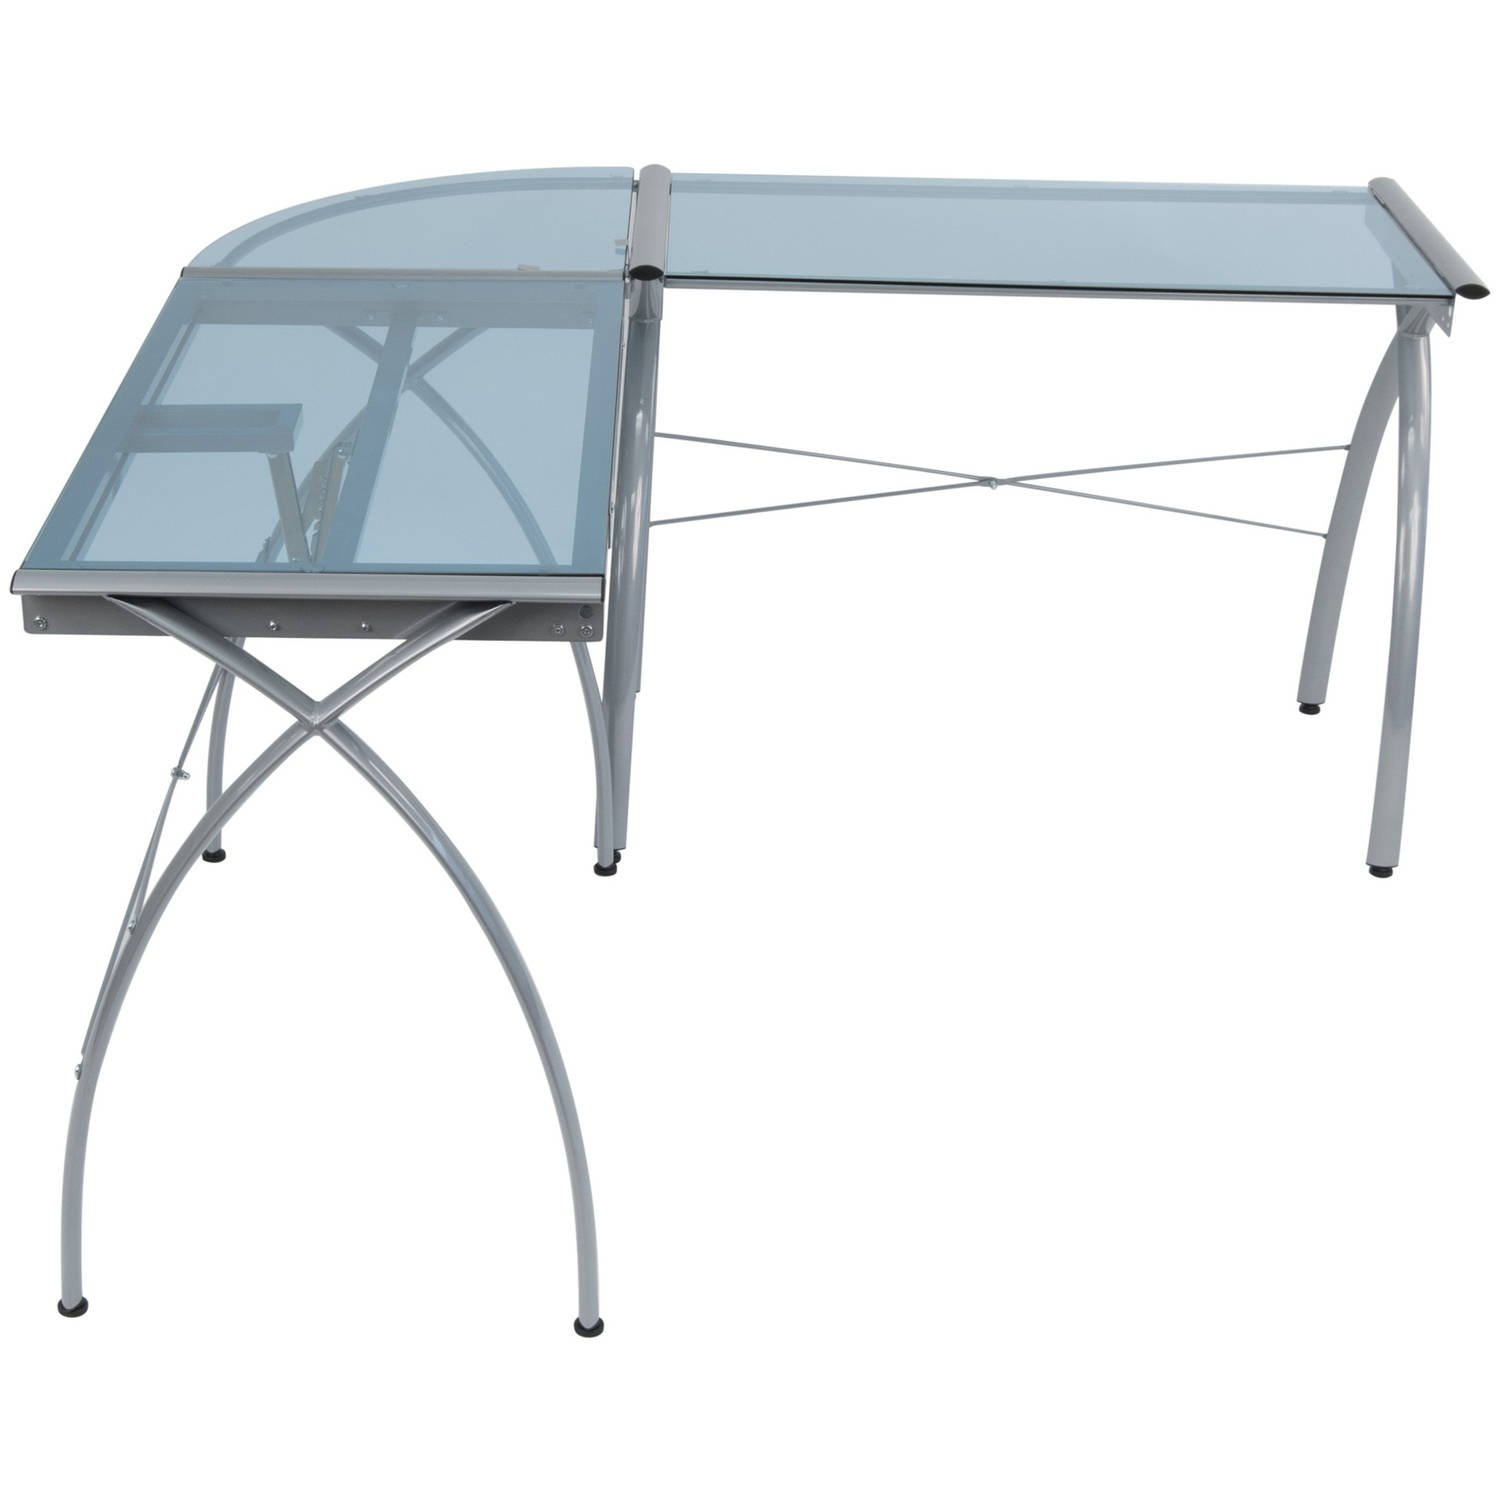 Corner Desk Drafting Table, L Shaped, Workstation, Adjustable Split Top, Functional, Suitable for Home Office, Art Student, Work and Craft Furniture + Expert Guide by Care 4 Home LLC (Image #4)